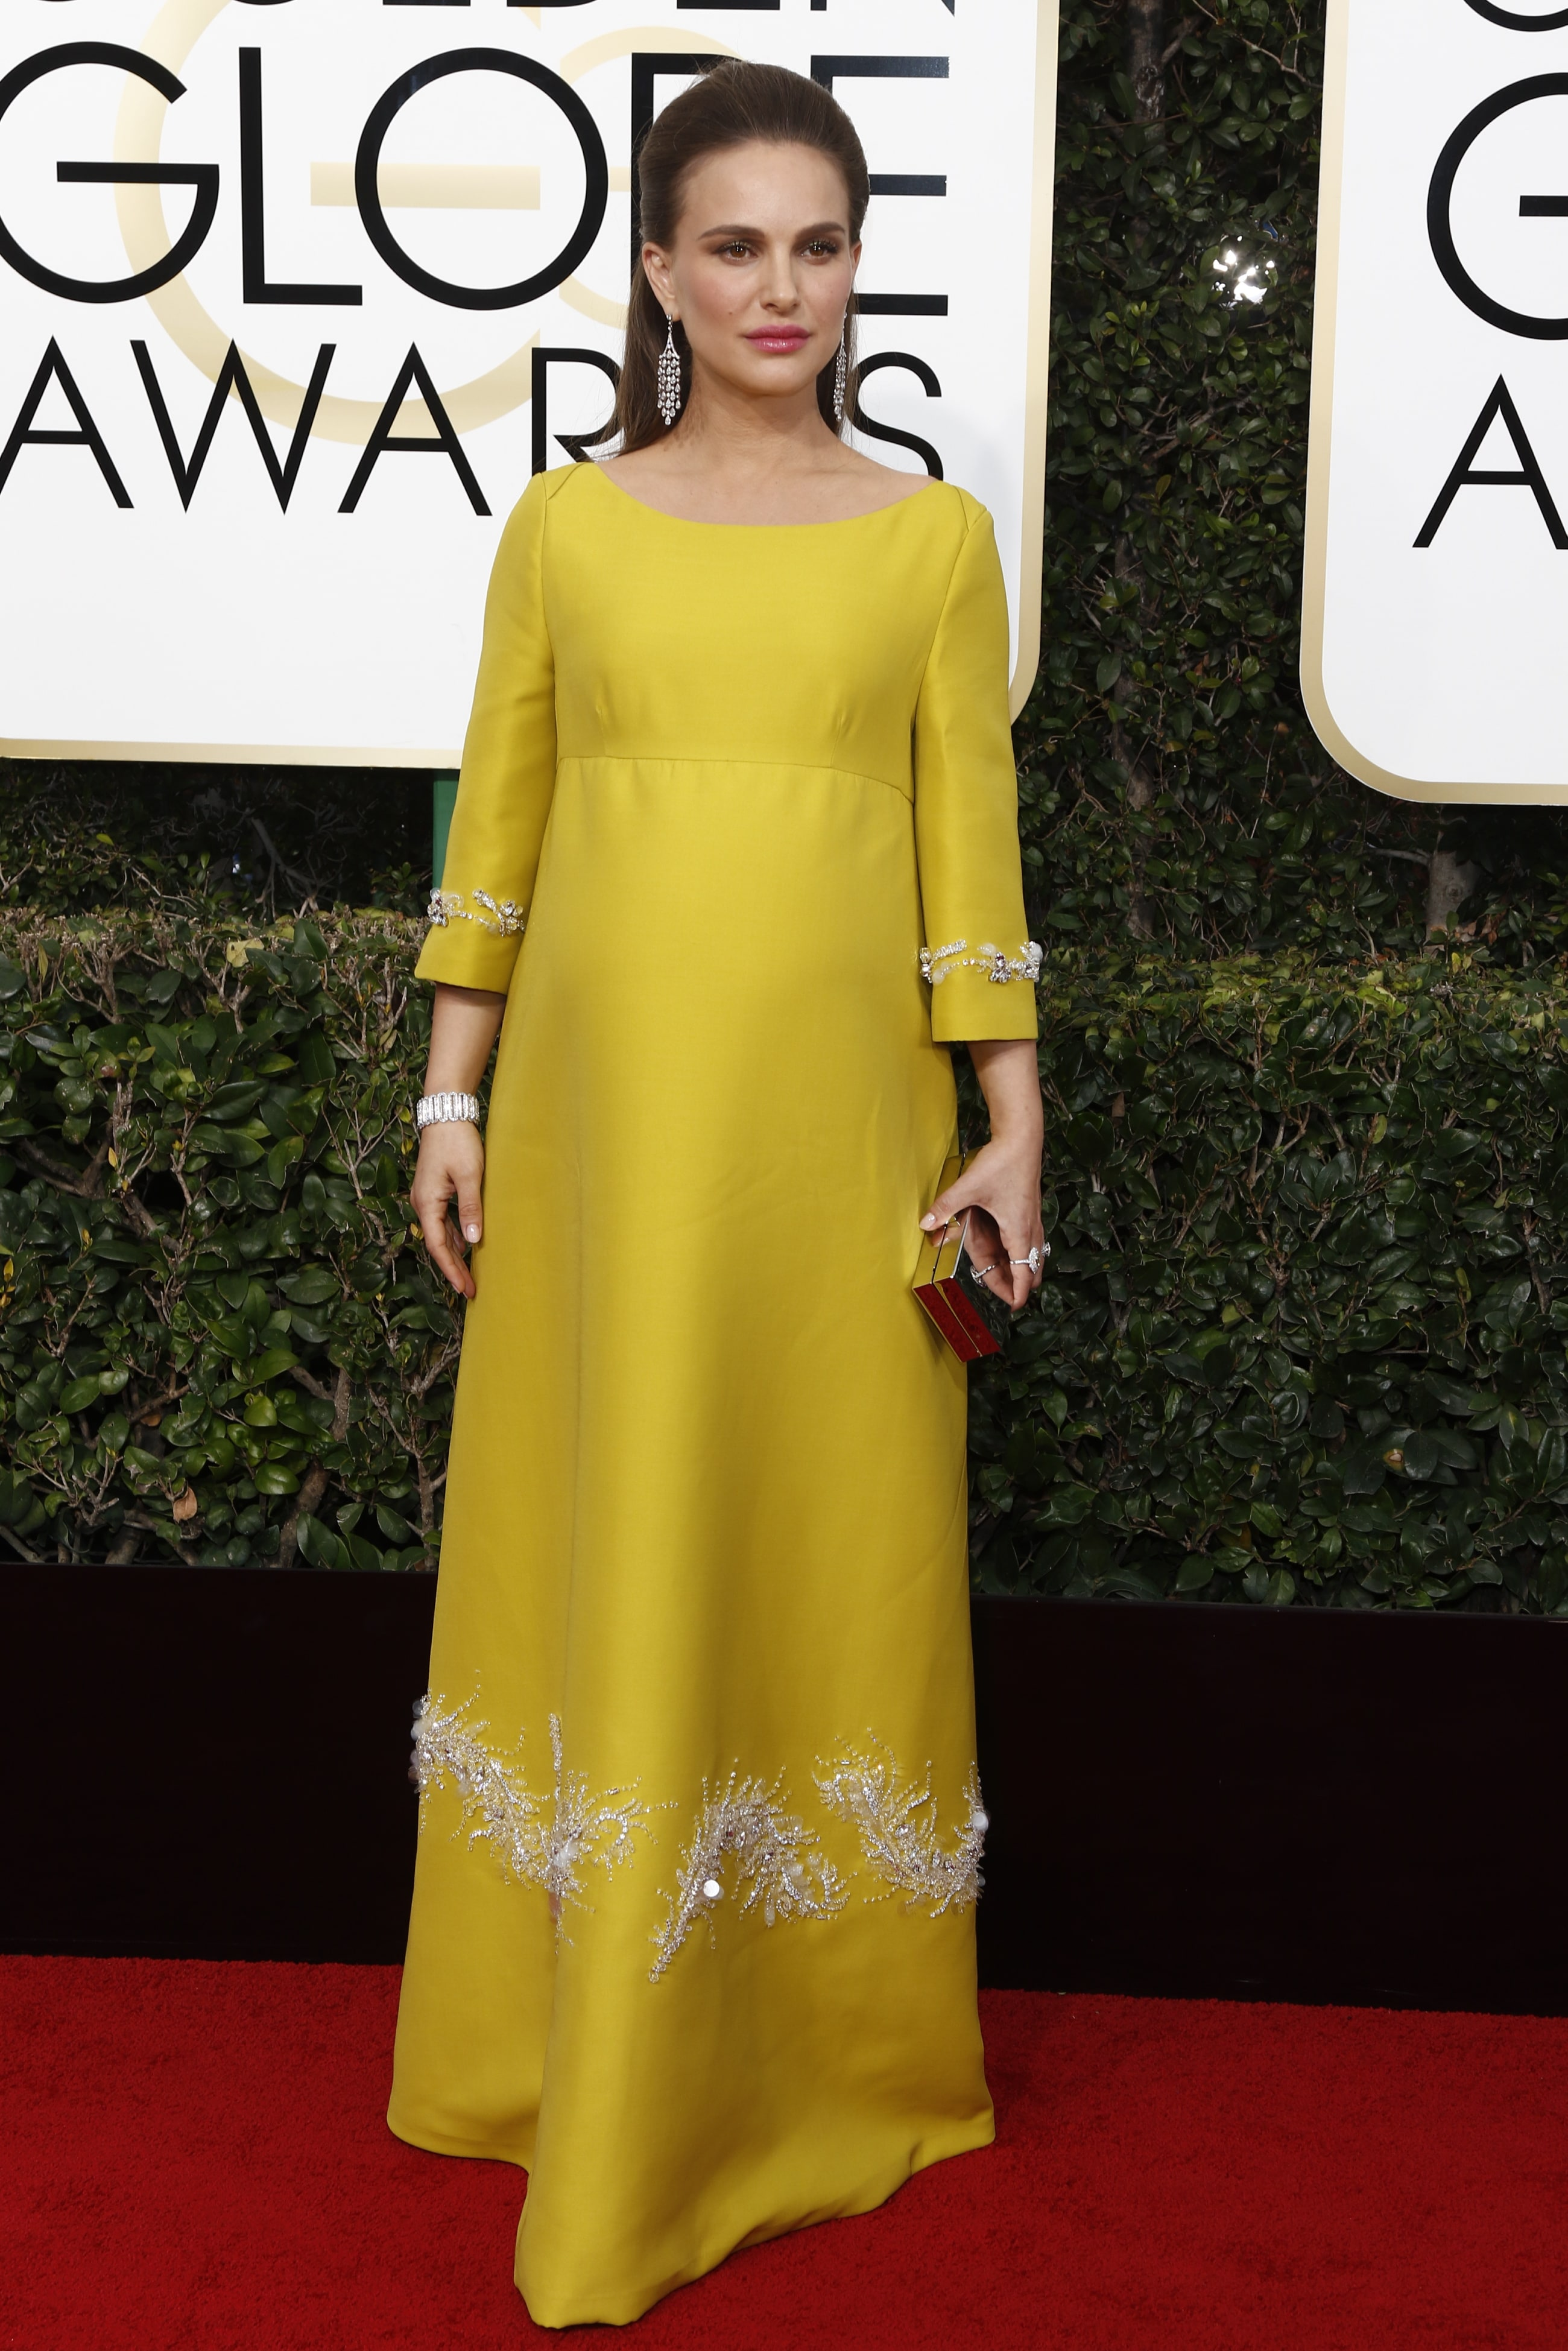 8b6ddc5304637 A pregnant Natalie Portman donned a long-sleeved bright yellow, embellished  Prada gown to